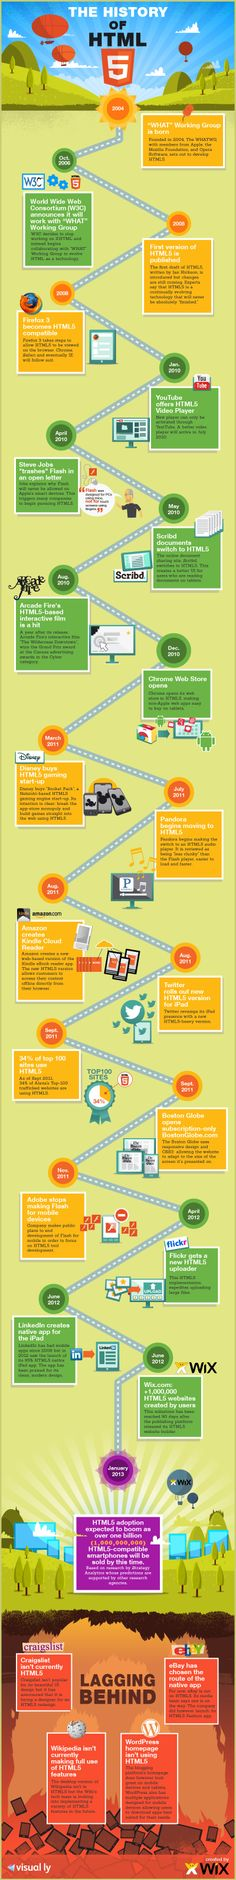 The History Of HTML5 [INFOGRAPHIC] #HTML5 #history